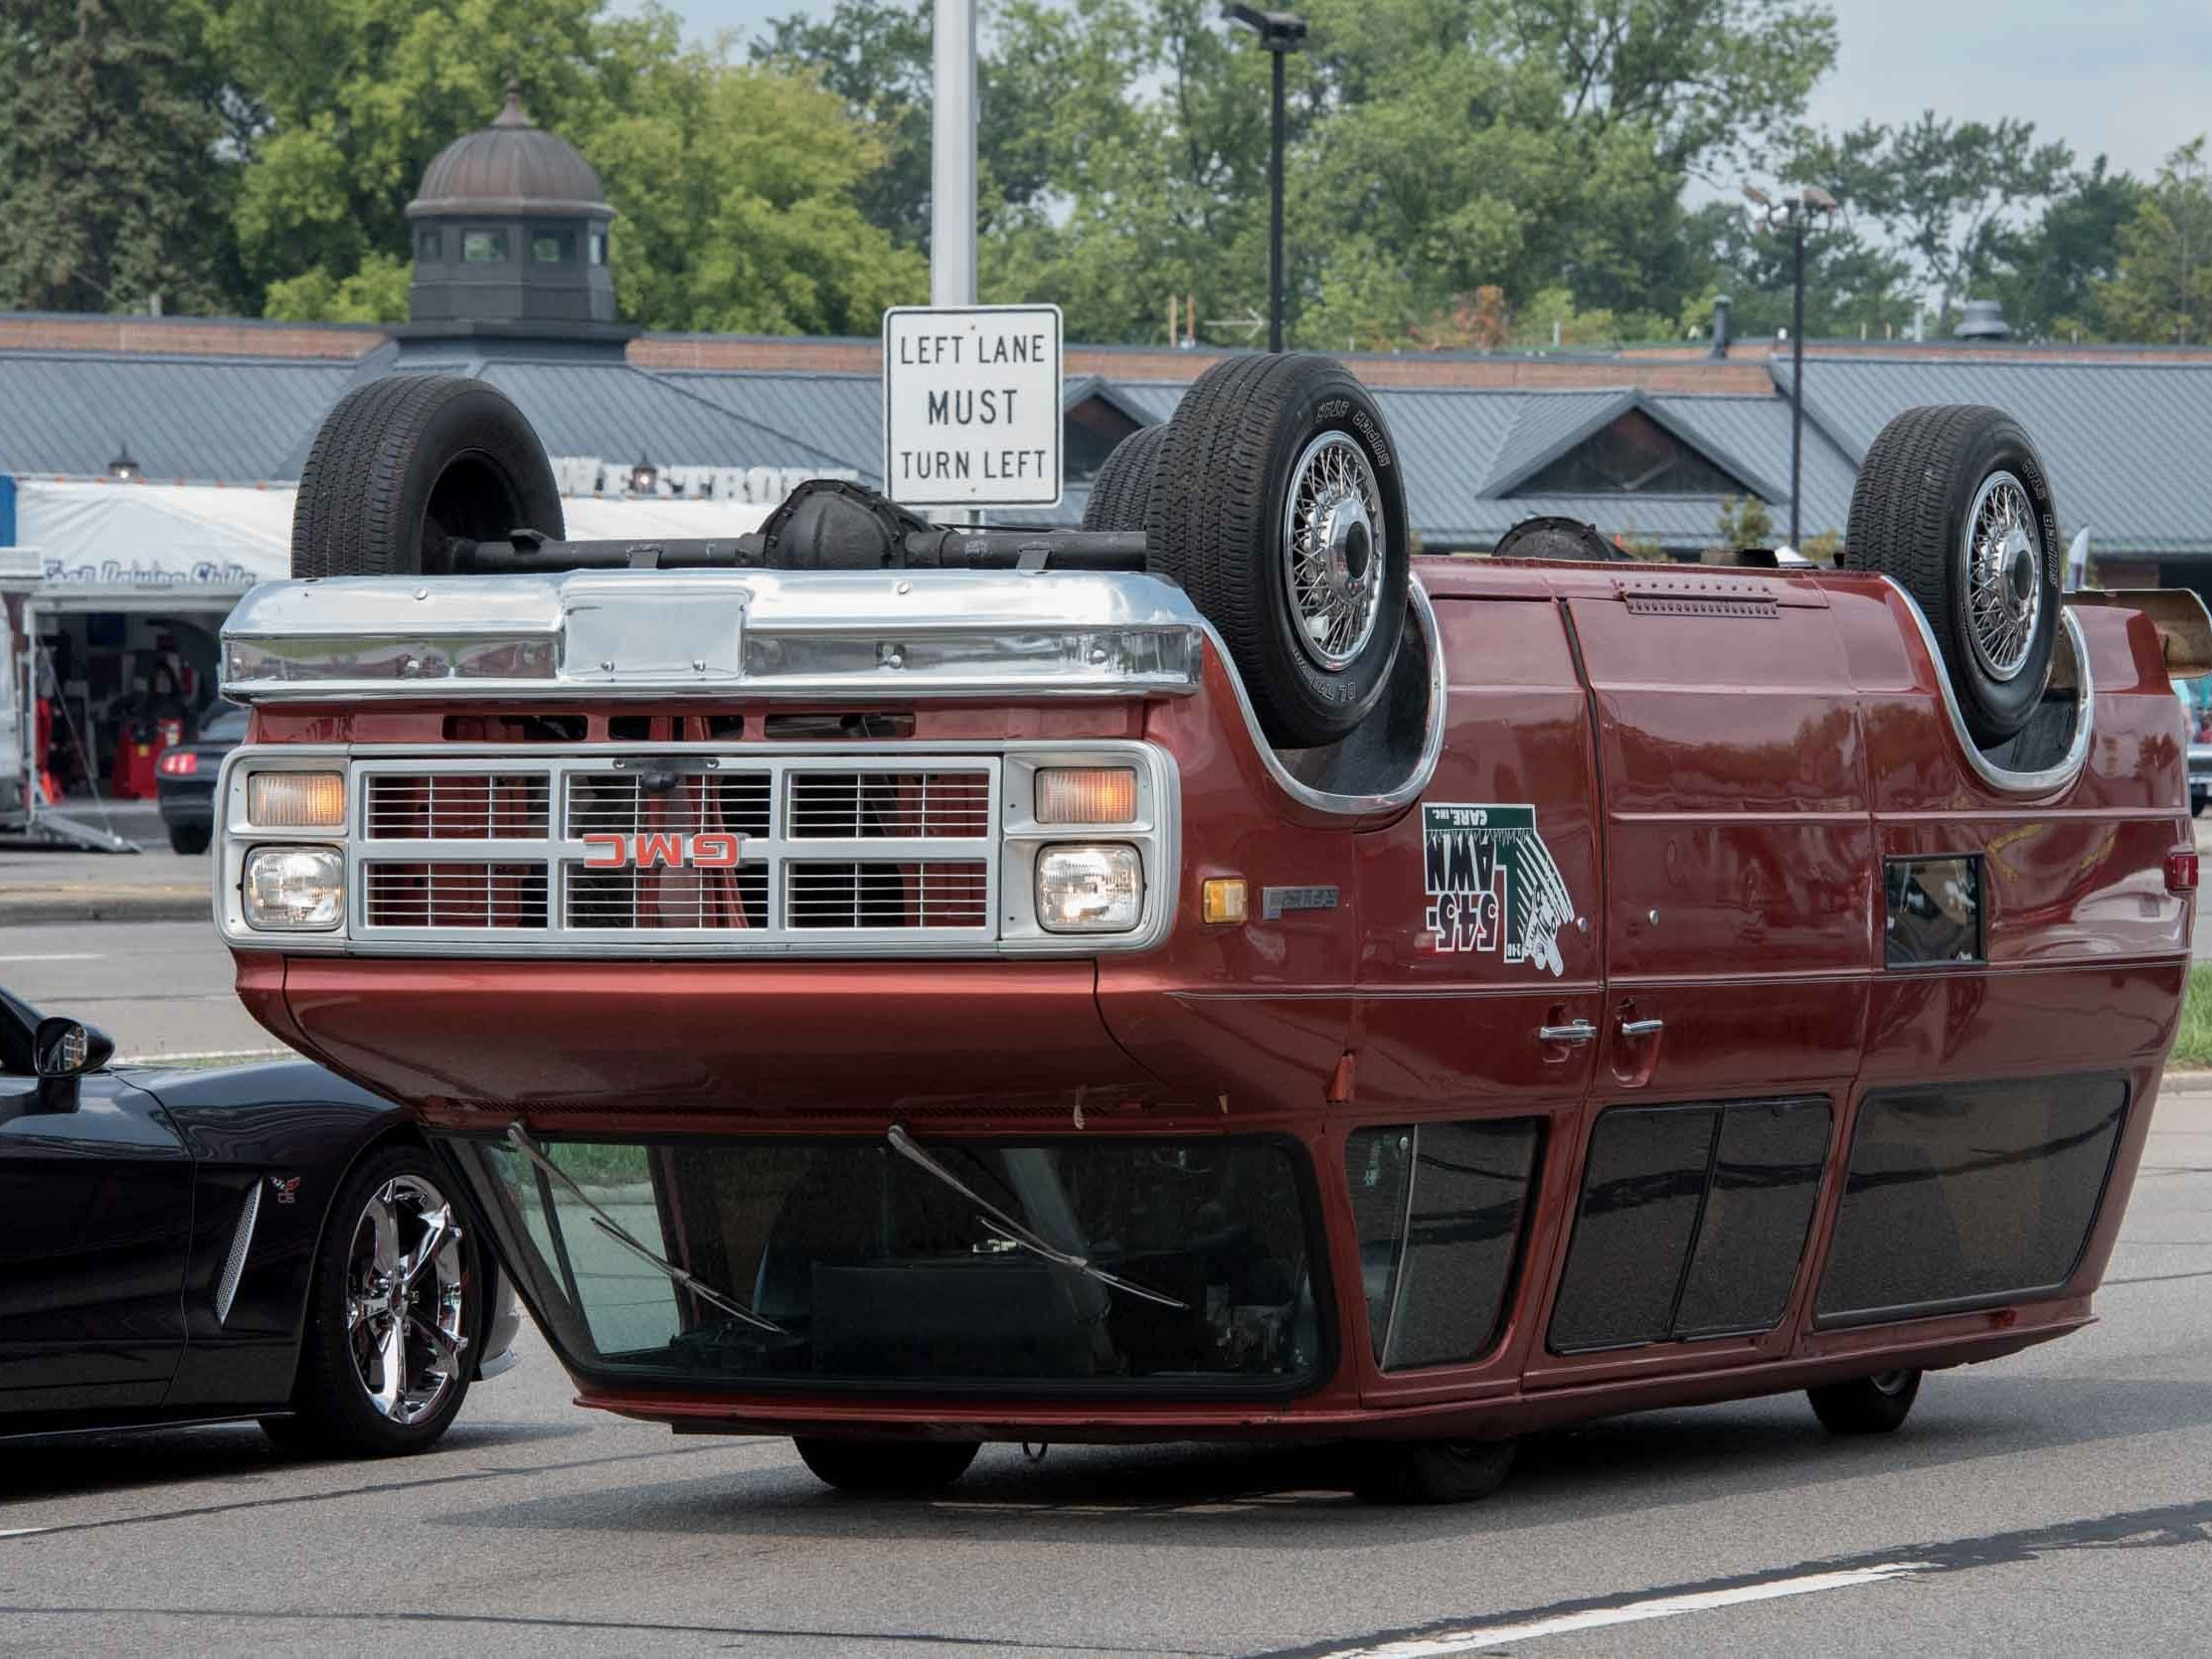 An upside down GMC vehicle is seen during the 2018 Woodward Dream Cruise on Aug. 18, 2018.